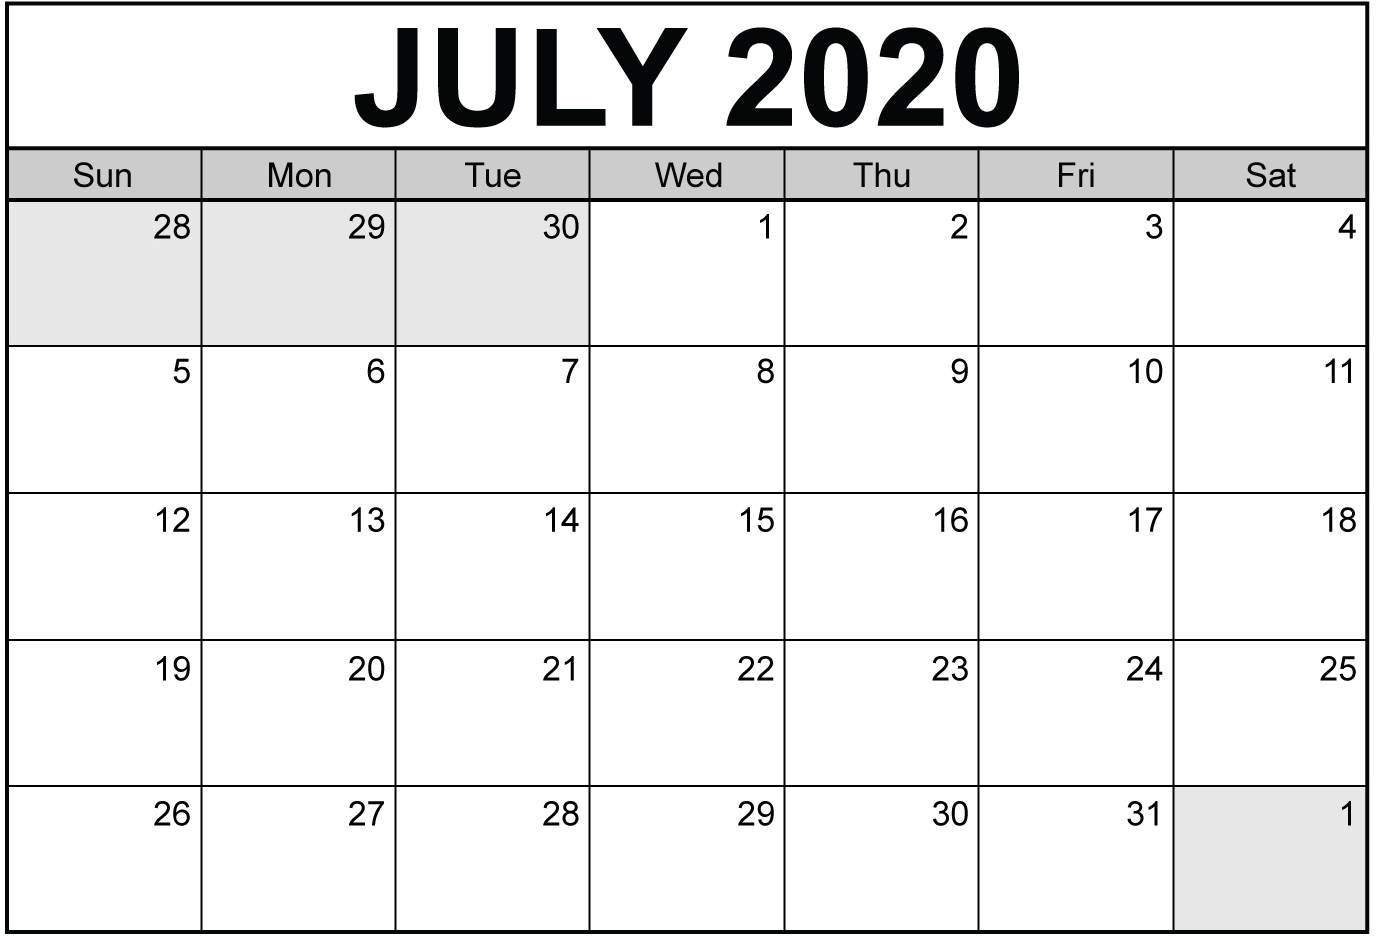 Print Calendar For July 2020 Daily Planner Template Web